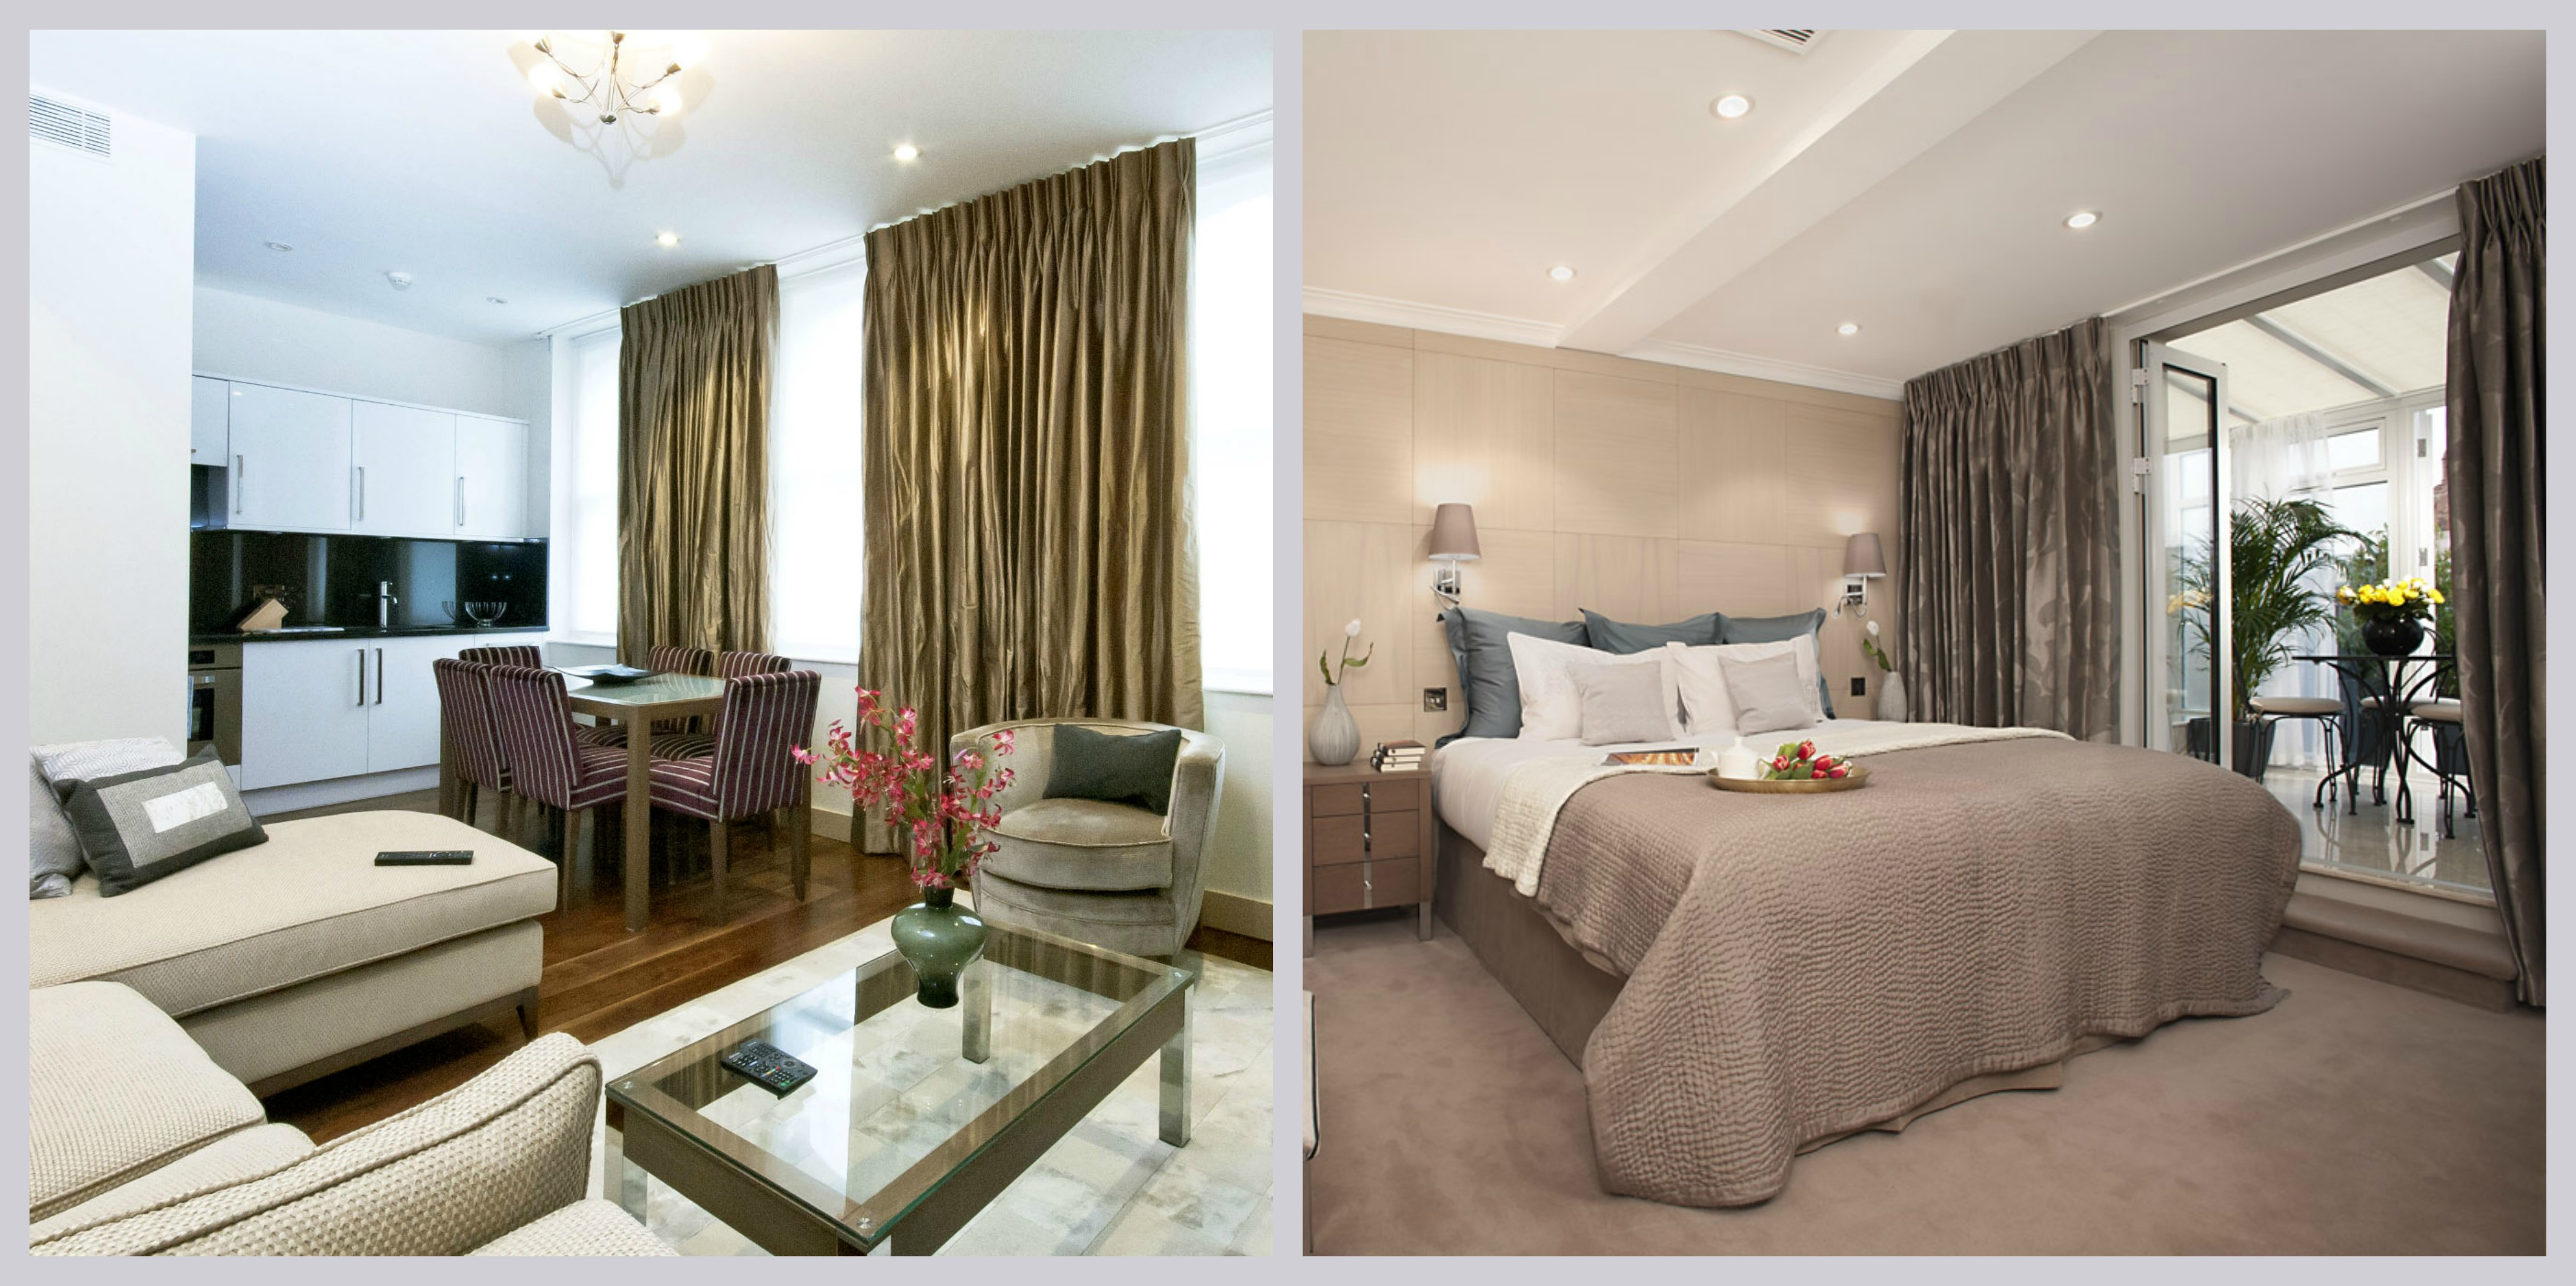 Claverley Court Luxury Serviced Apartments